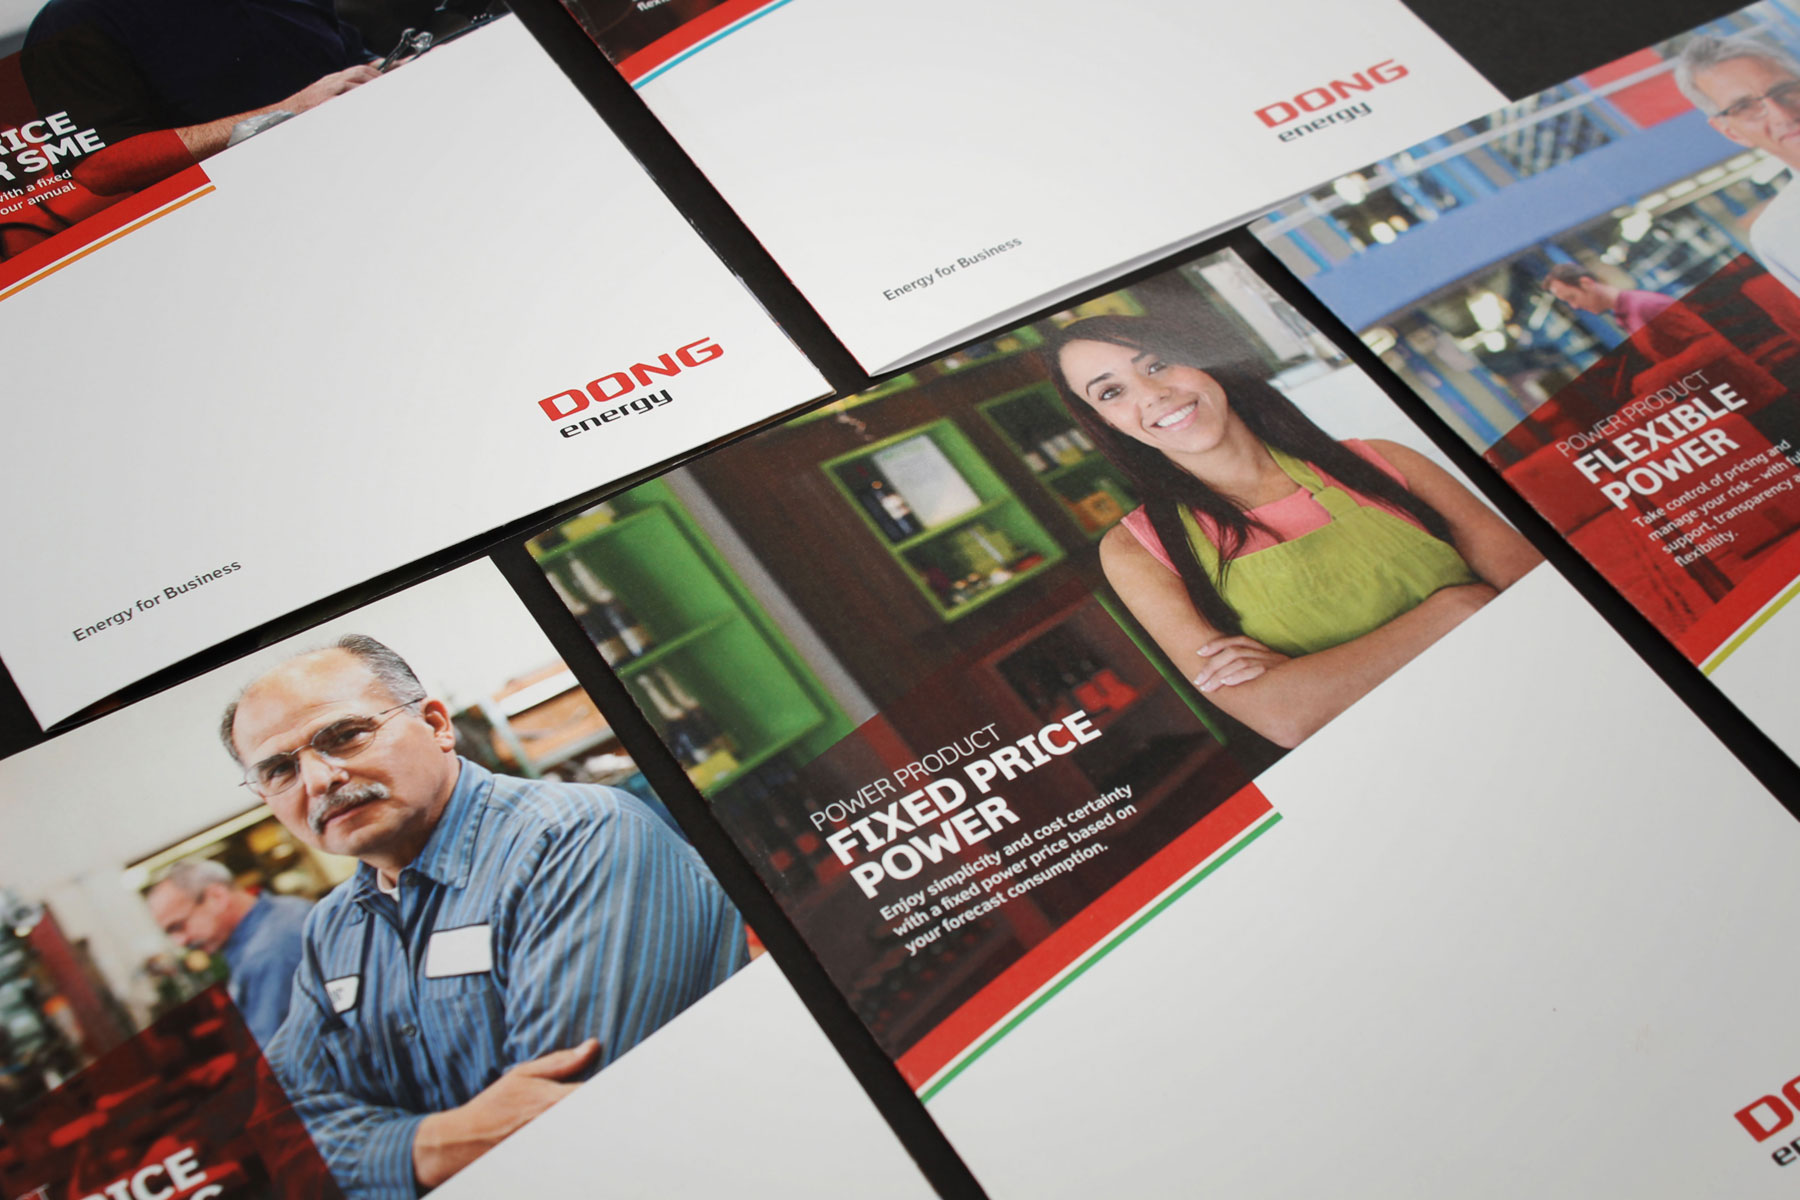 A number of printed materials were produced for the sales team. The look and feel aligns seamlessly with the new website. Strong use of white space enhances the graphic devices and gives DONG Energy for Business a clean, contemporary look and feel.